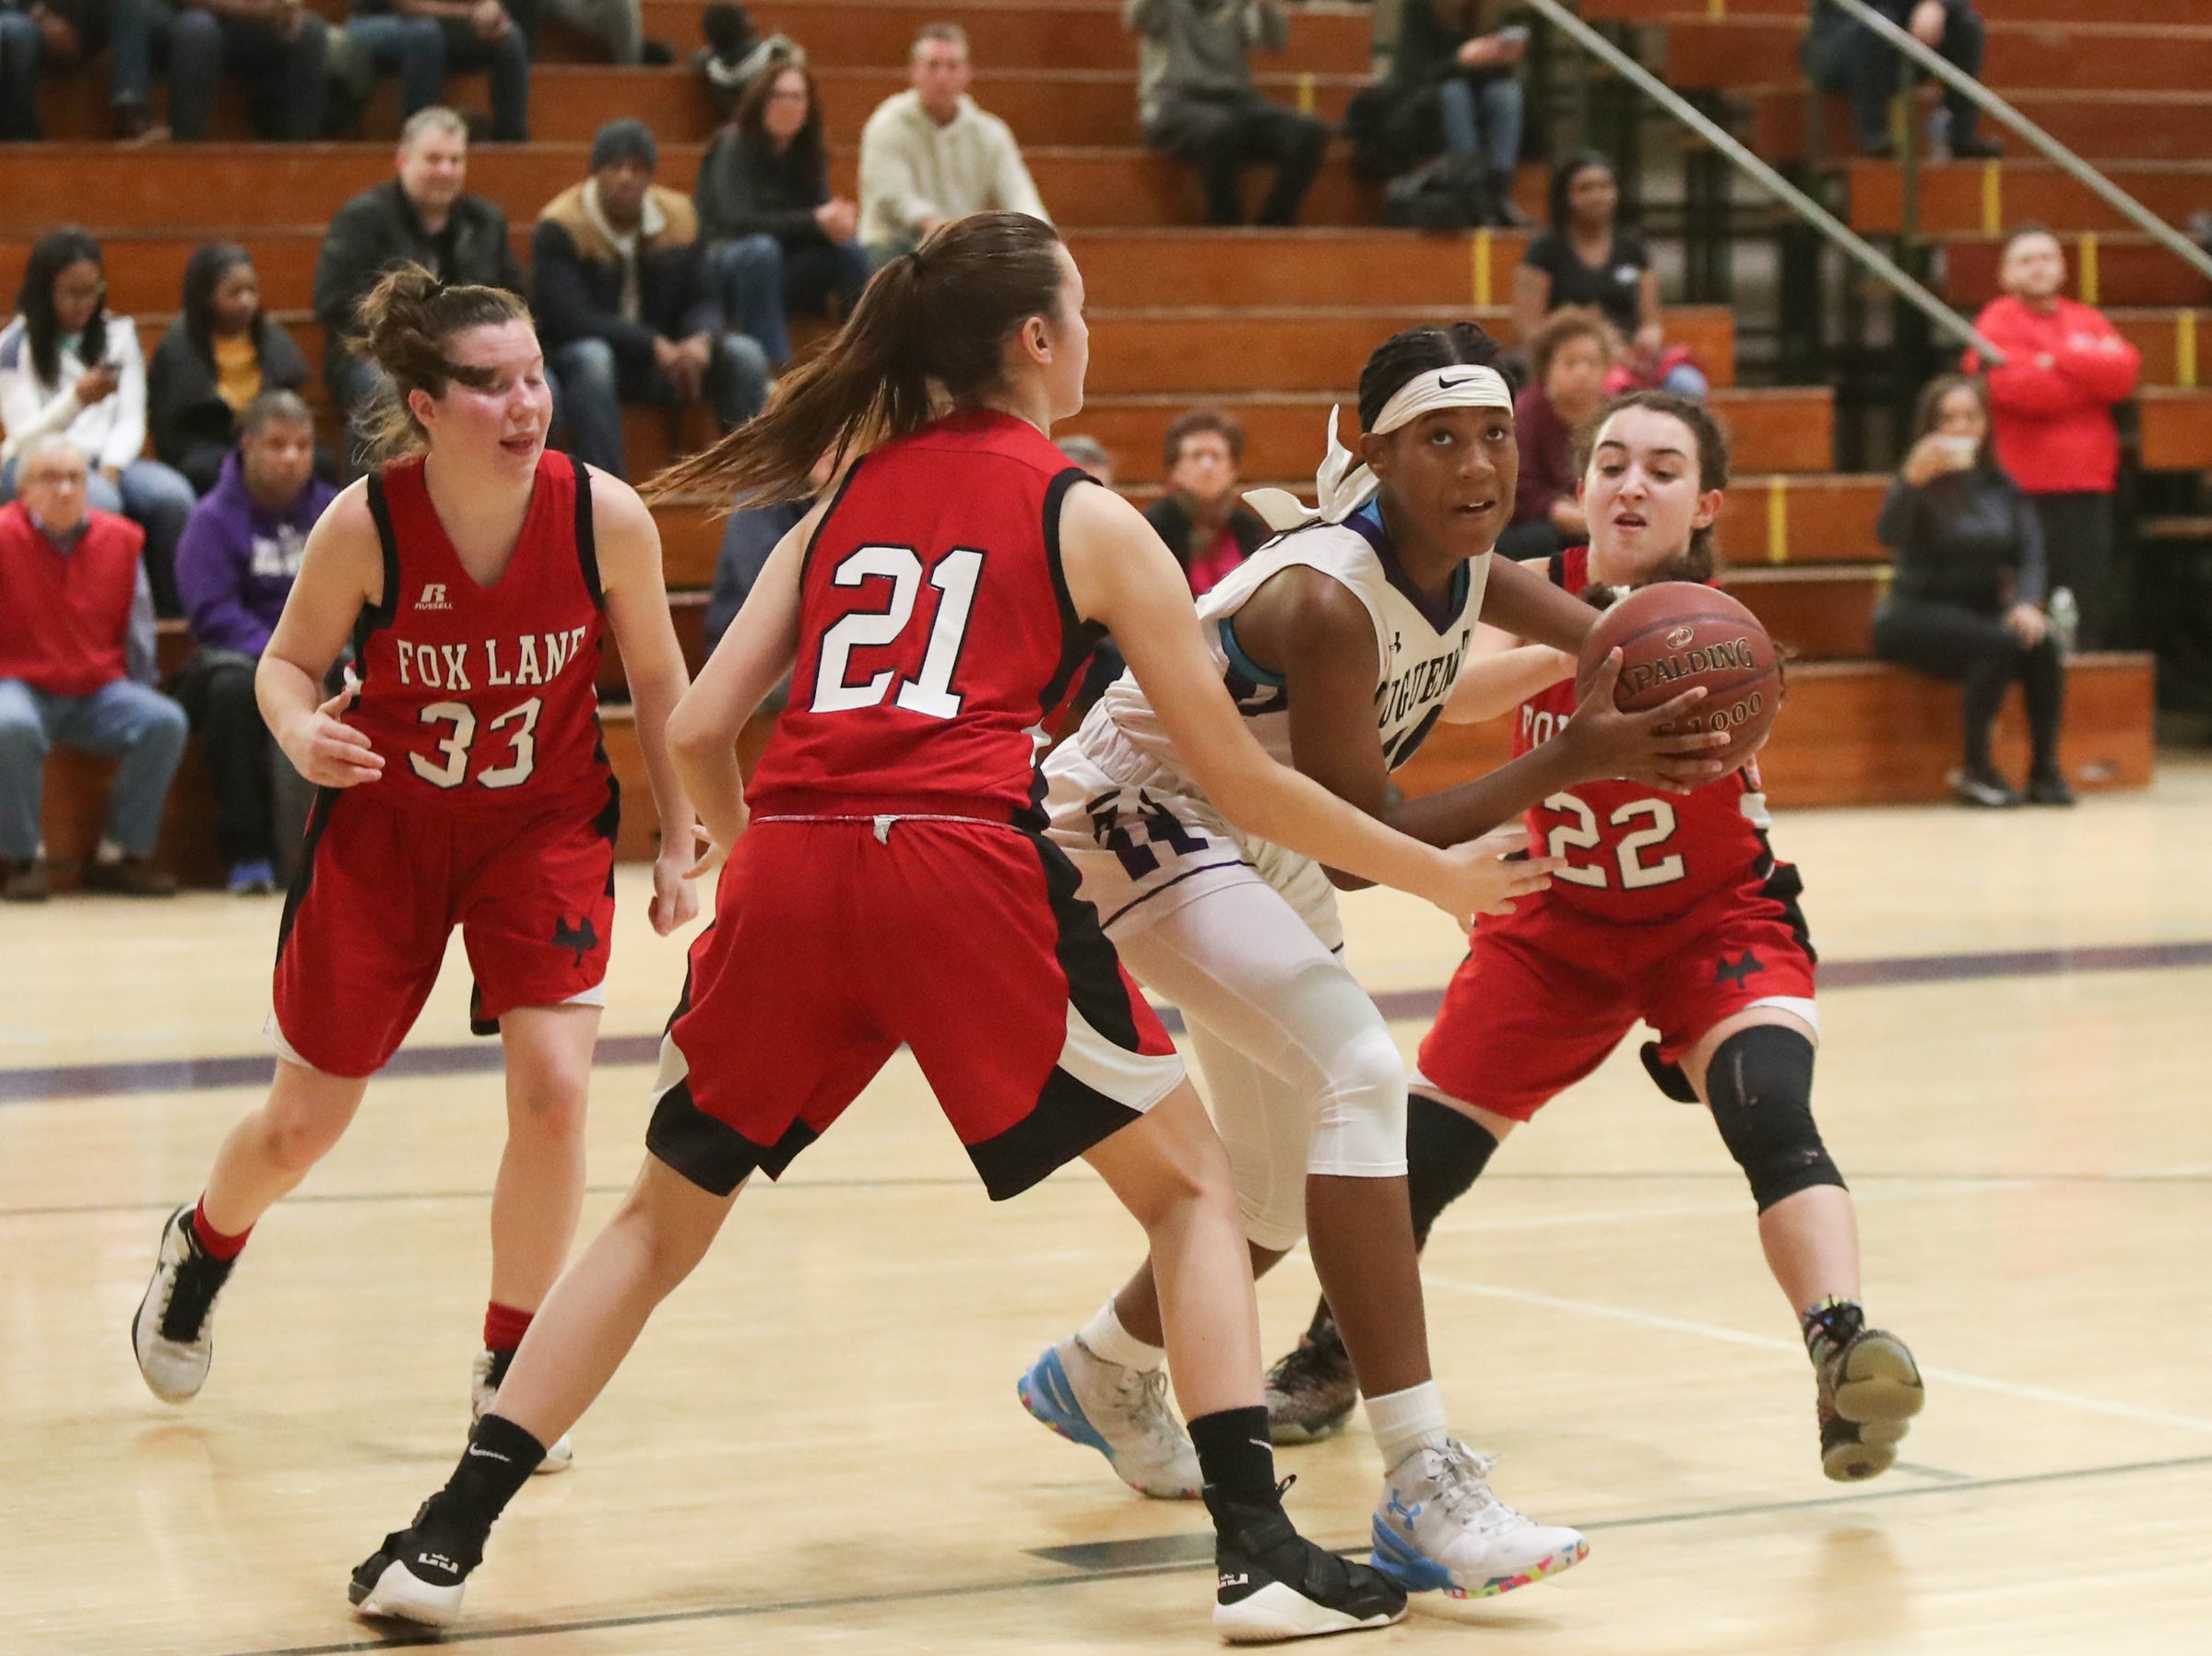 New Rochelle's Nyeira Spady (21) works hard against Fox Lane's Sofia Zinzi (21) and Nicole Picinich (22) in the class AA girls basketball outbracket game at New Rochelle High School in New Rochelle on Saturday, February 16, 2019.